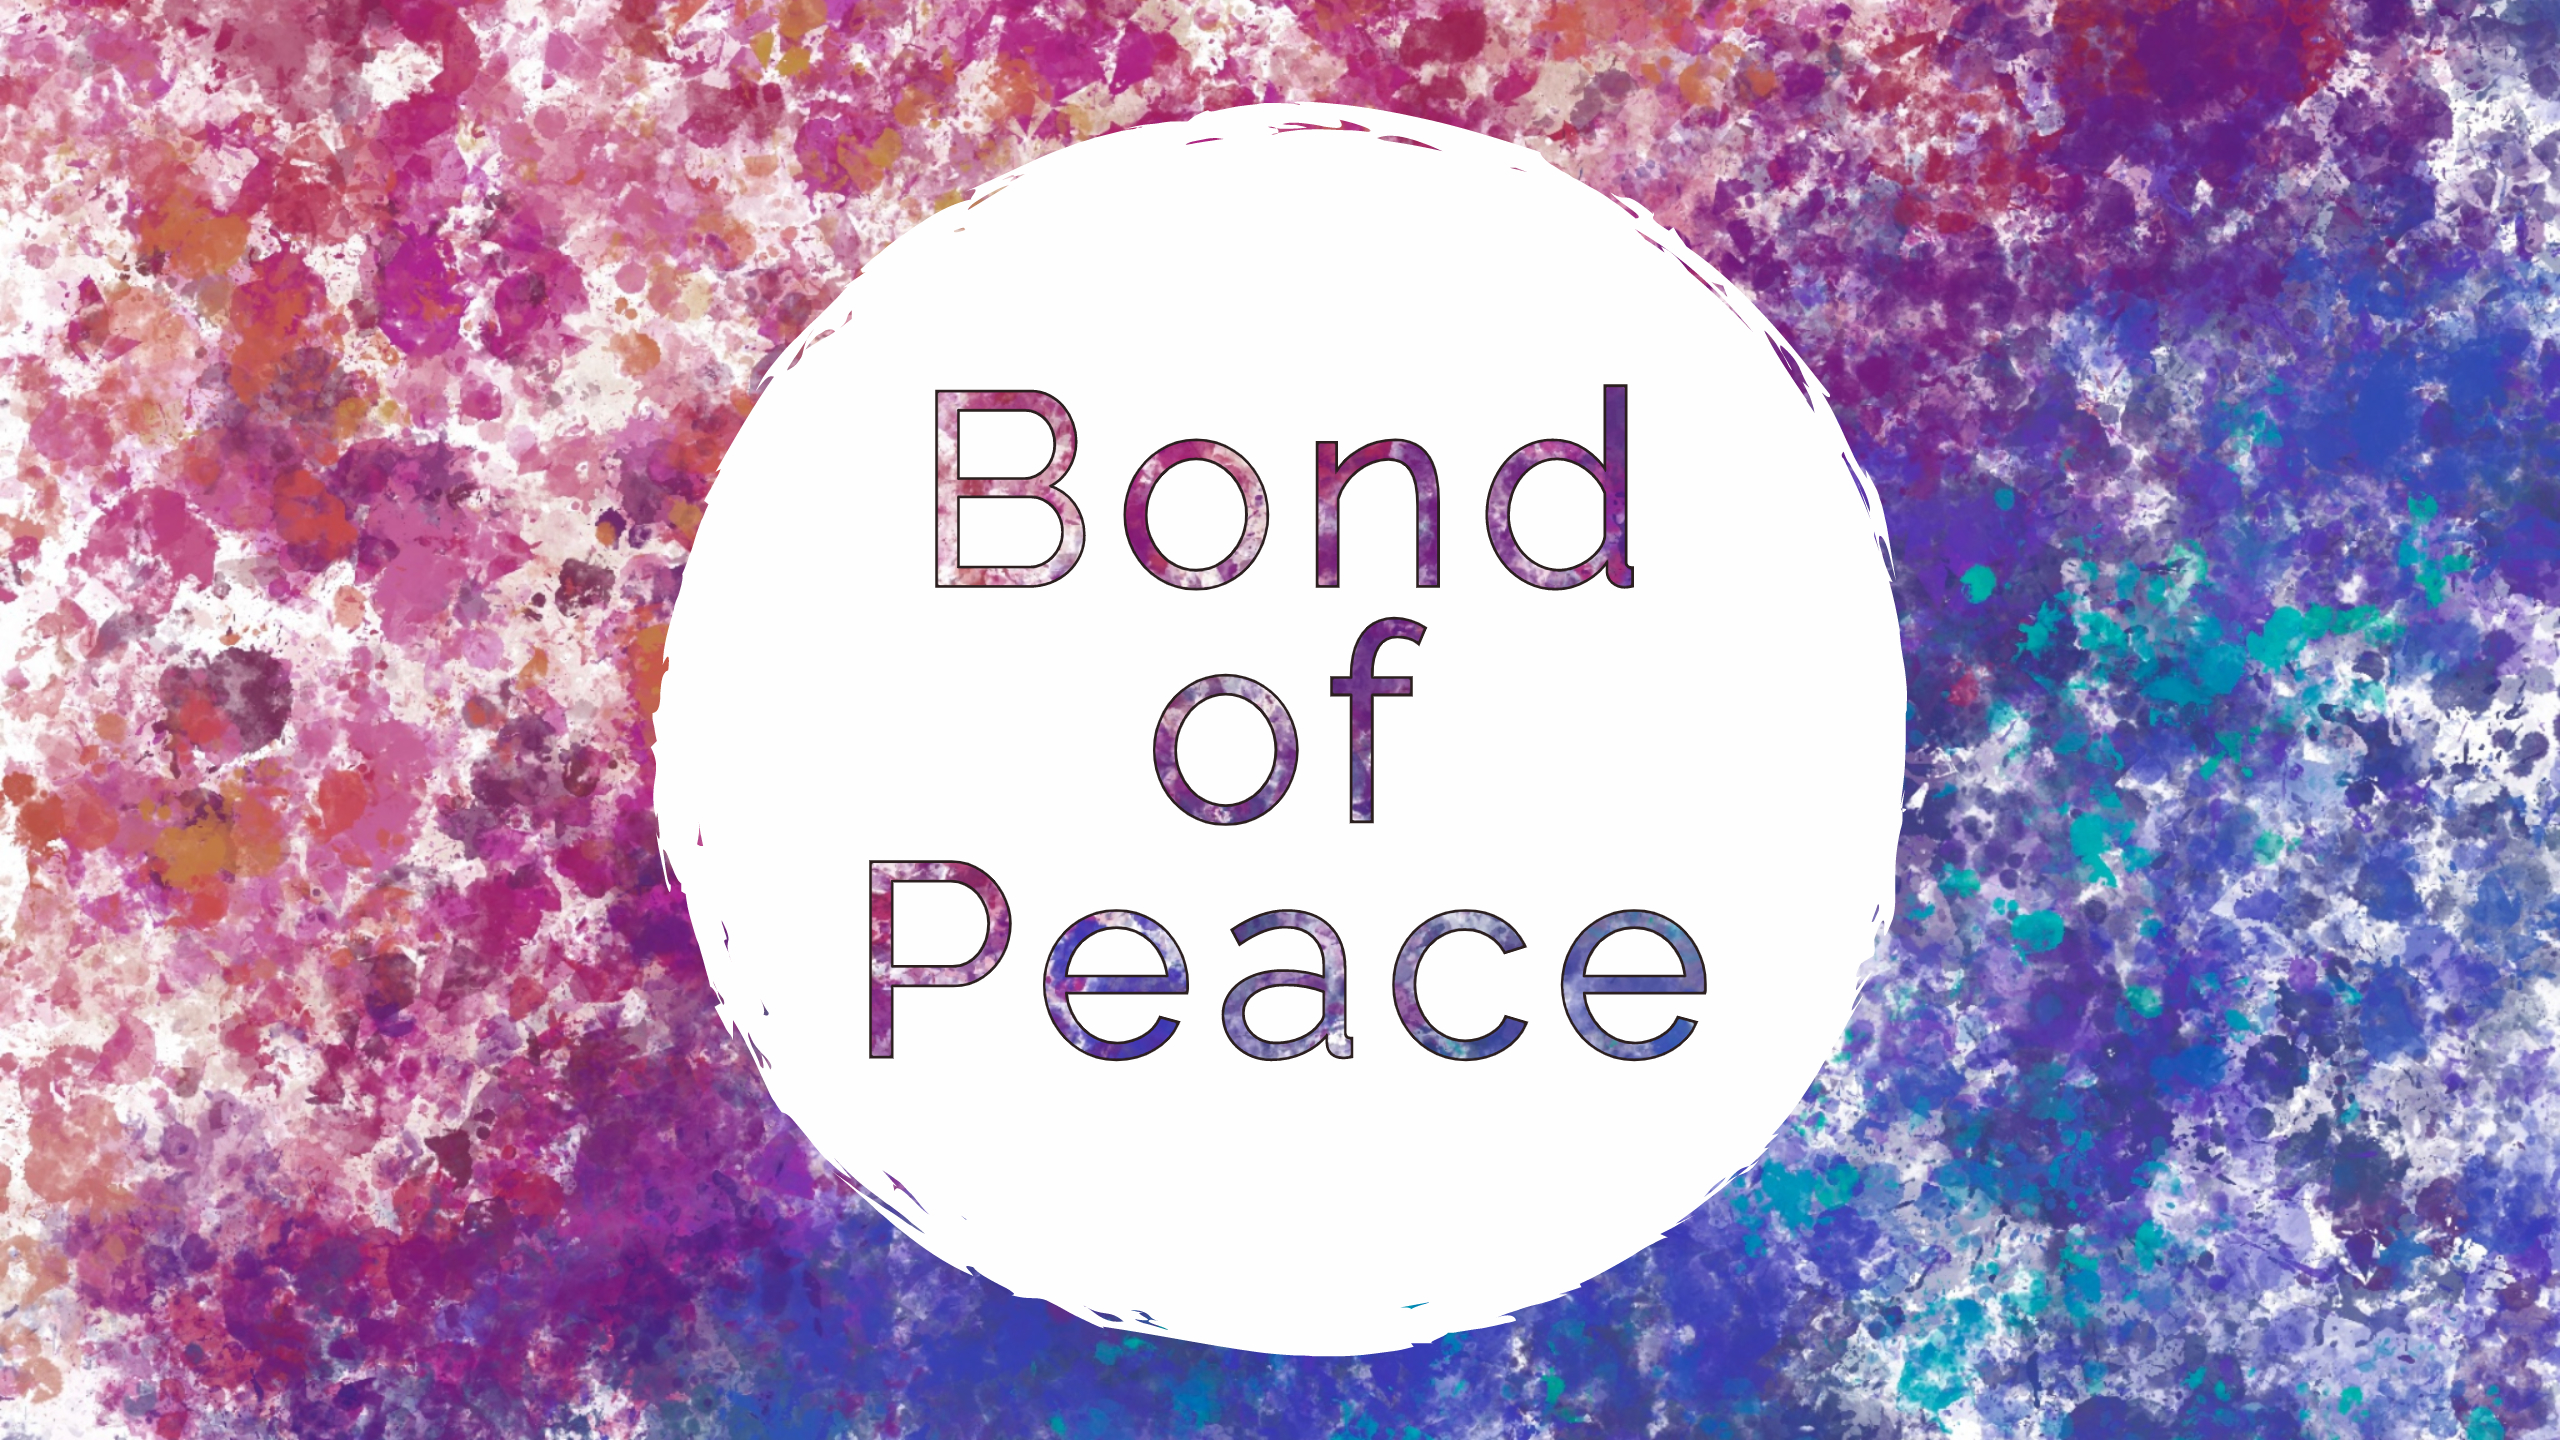 The Bond of Peace